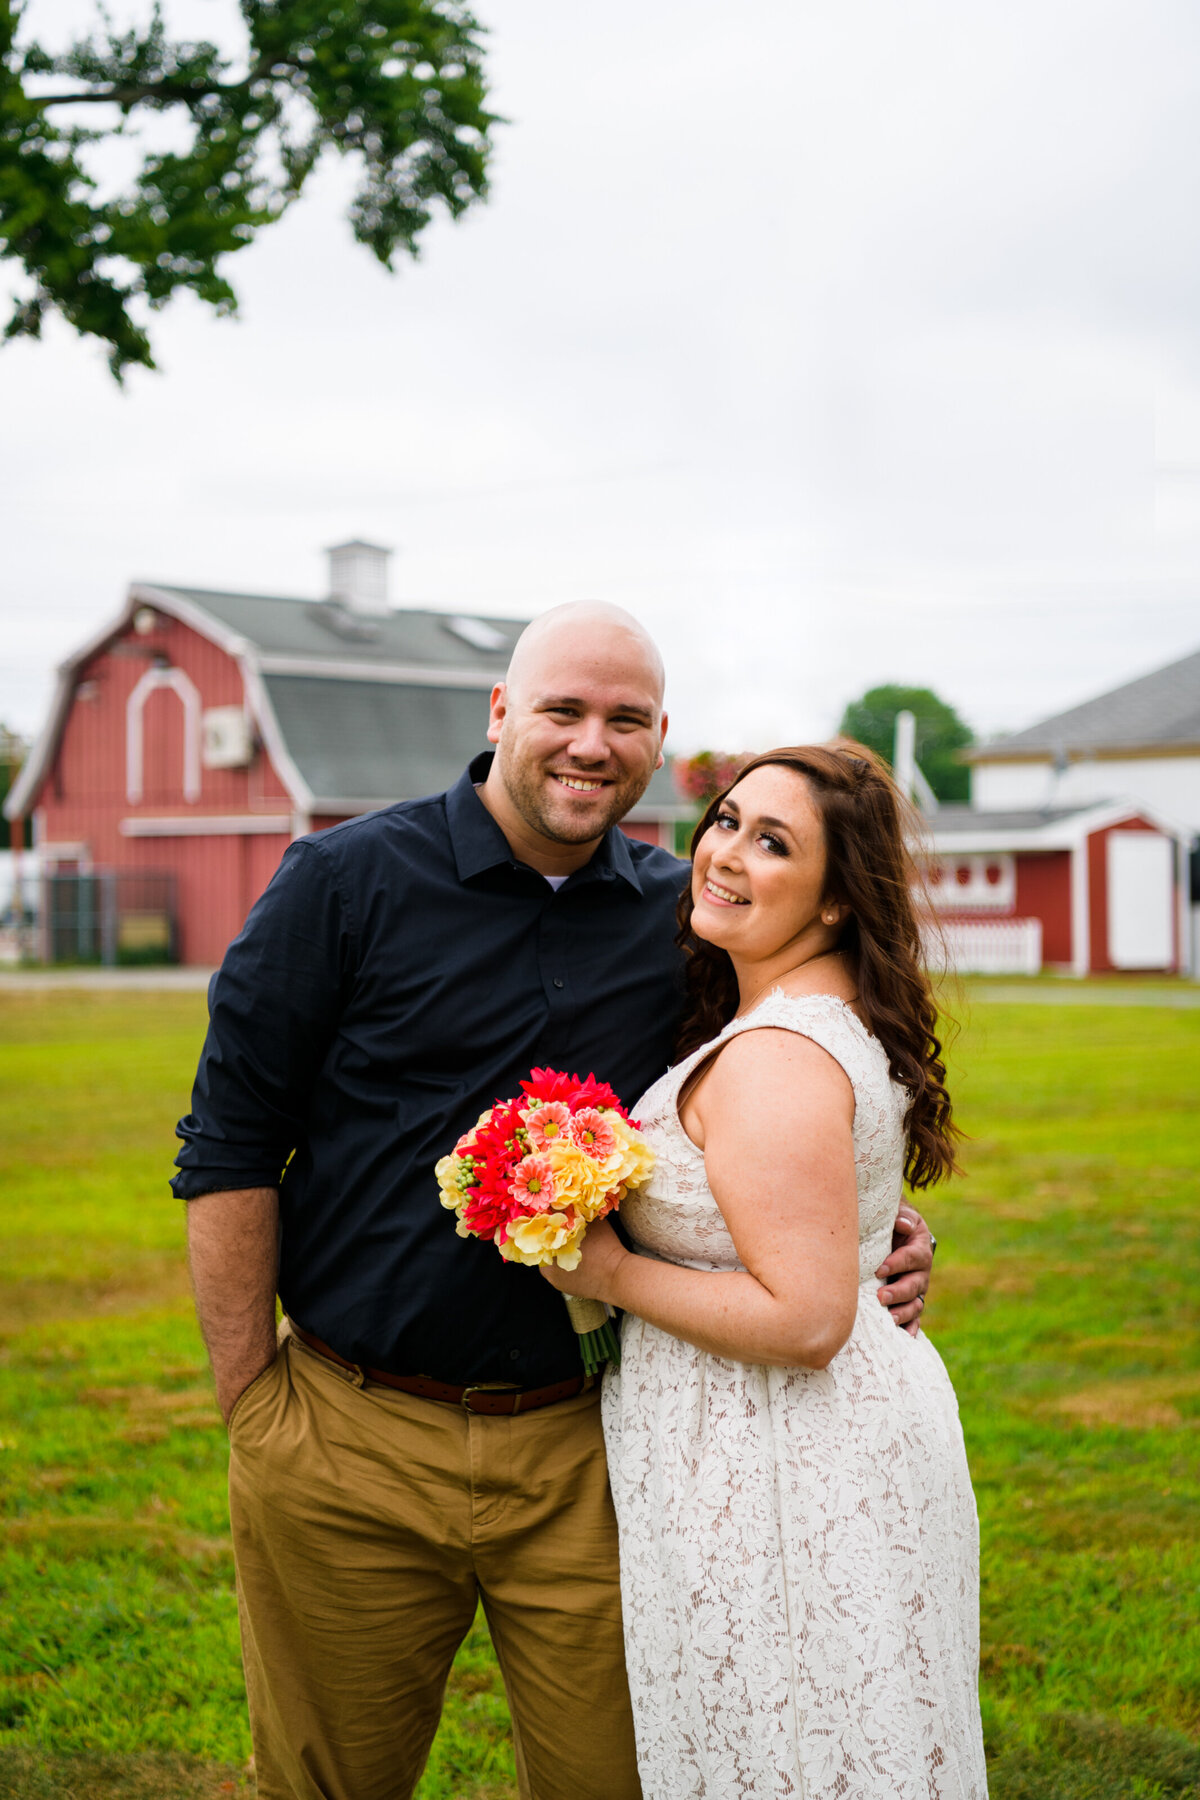 Topsfield fairgrounds wedding ceremony